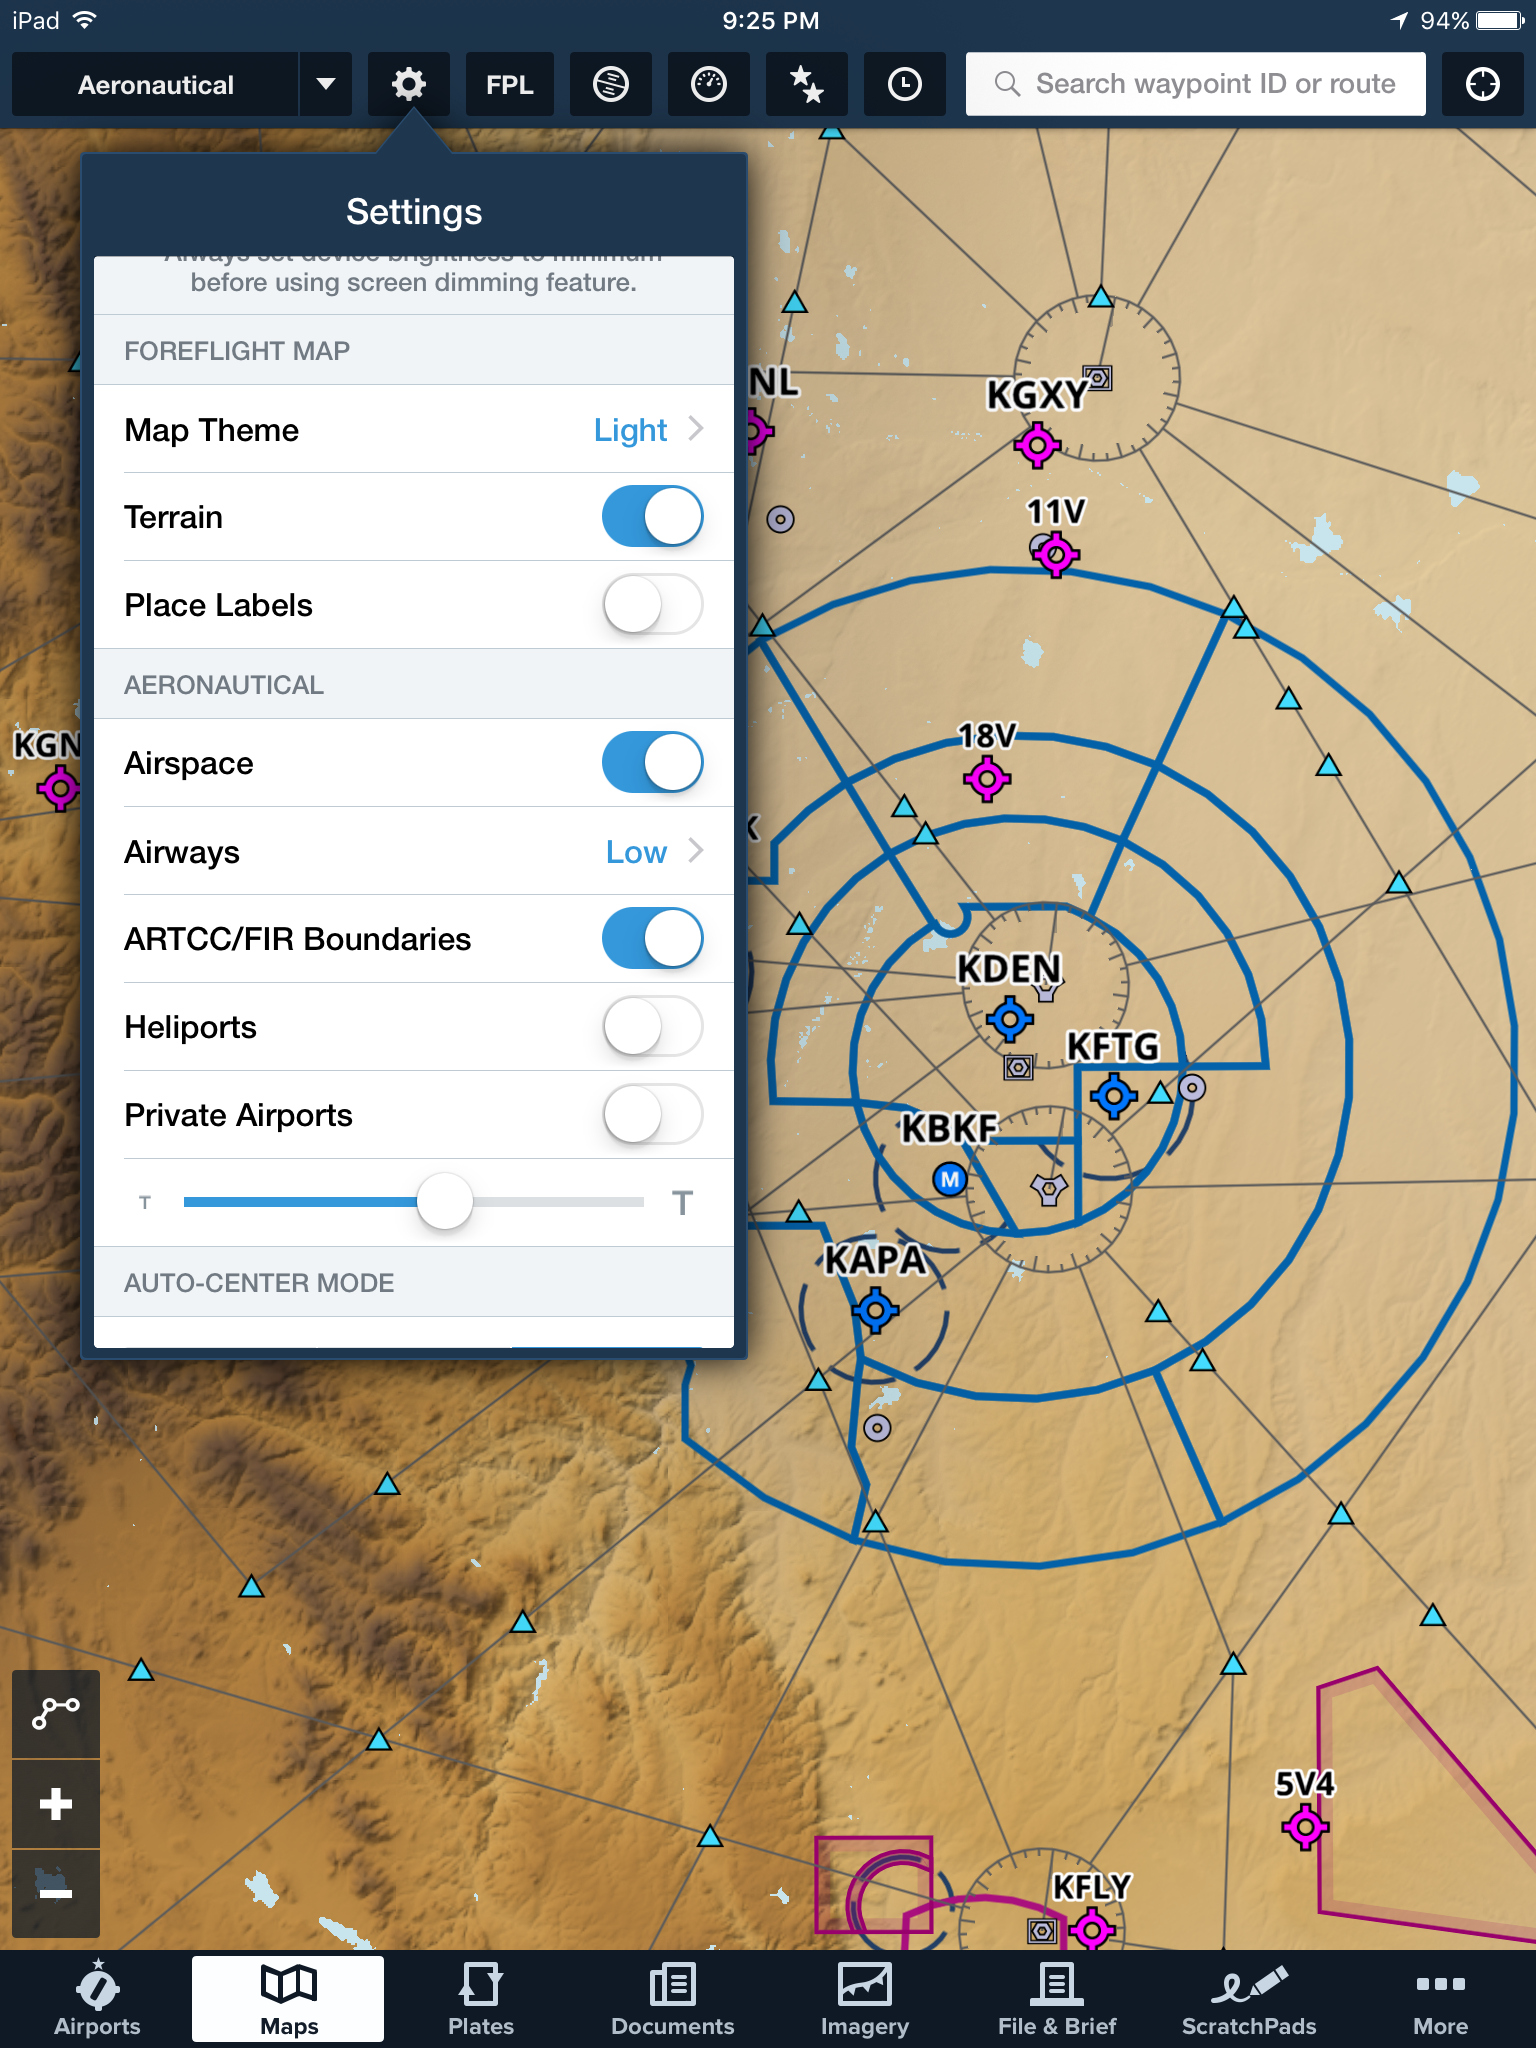 ForeFlight 8: Global Data-Driven Aeronautical Maps, Logbook ... on ham radio dx maps, electronic maps, mobile maps, faa flight paths maps, military maps, organizational maps, navigation maps, national geographic floor maps, food maps, search maps, nautical maps, science maps, jeppesen maps, agriculture maps, shipping maps, aviation maps, engineering maps, teaching maps, oil and gas maps,